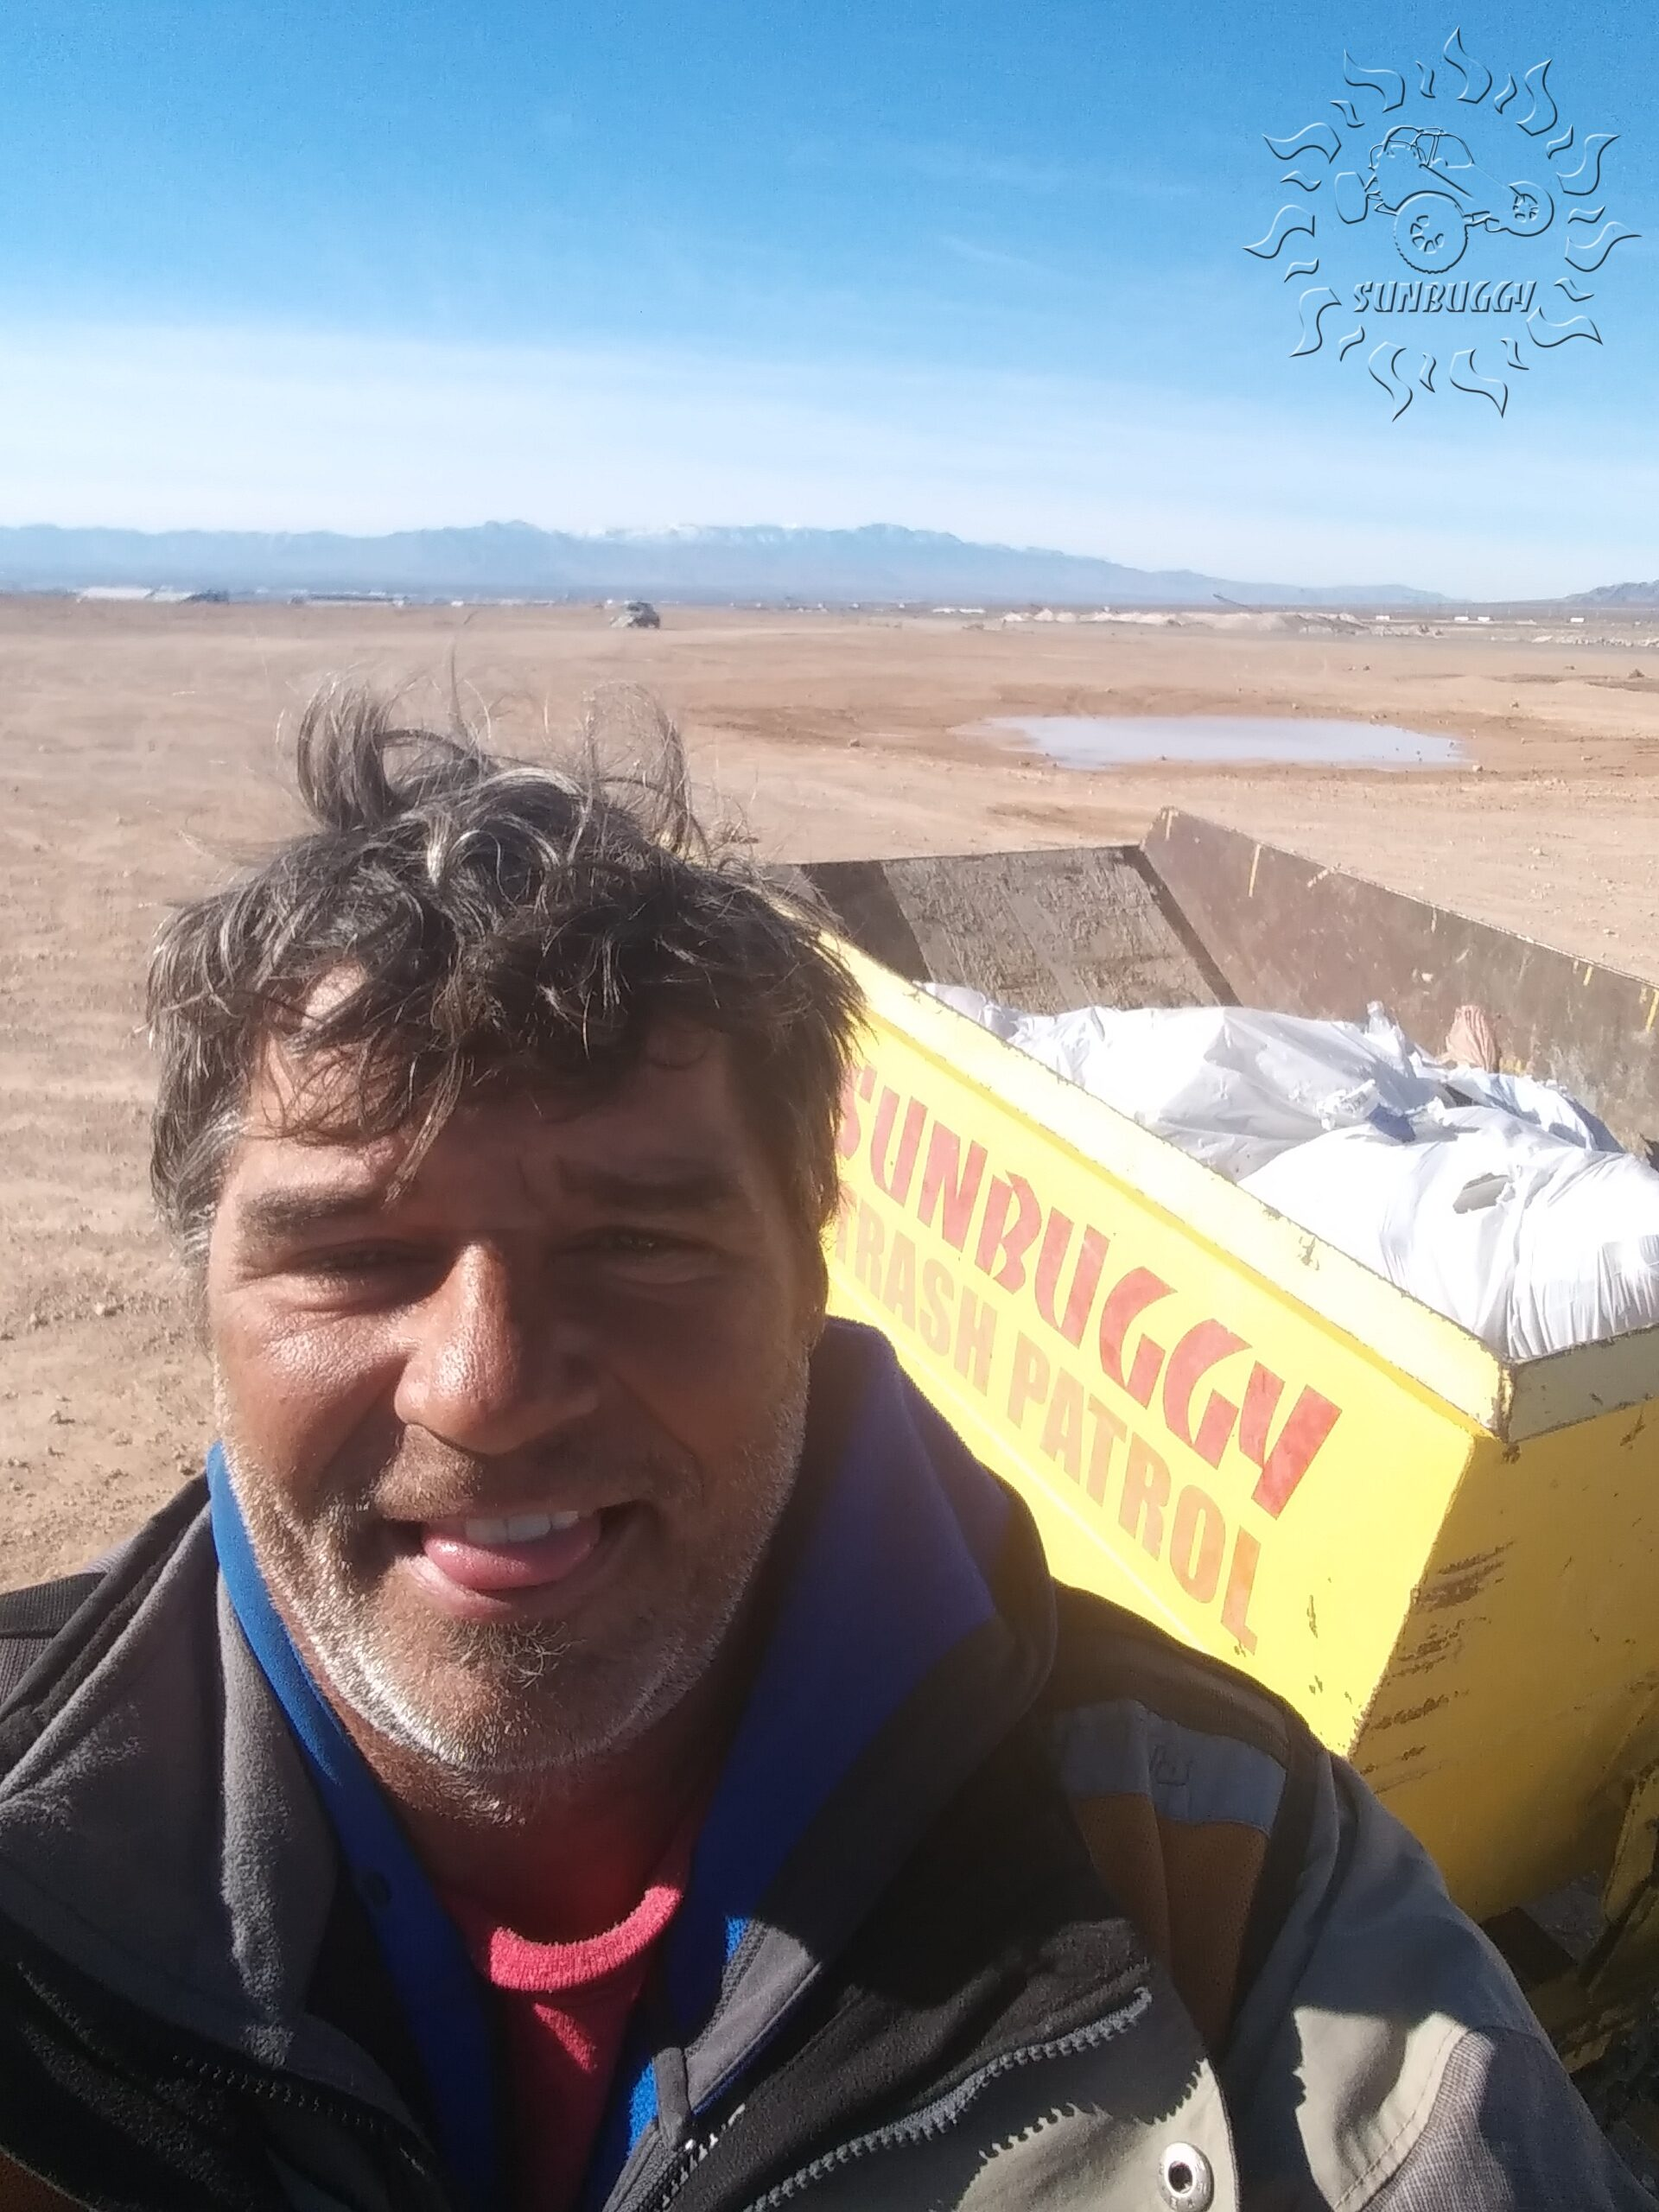 sunbuggy-vegas-Trash_patrol_d_20191217114323_f_mojavemidnight_p_20191217_114329